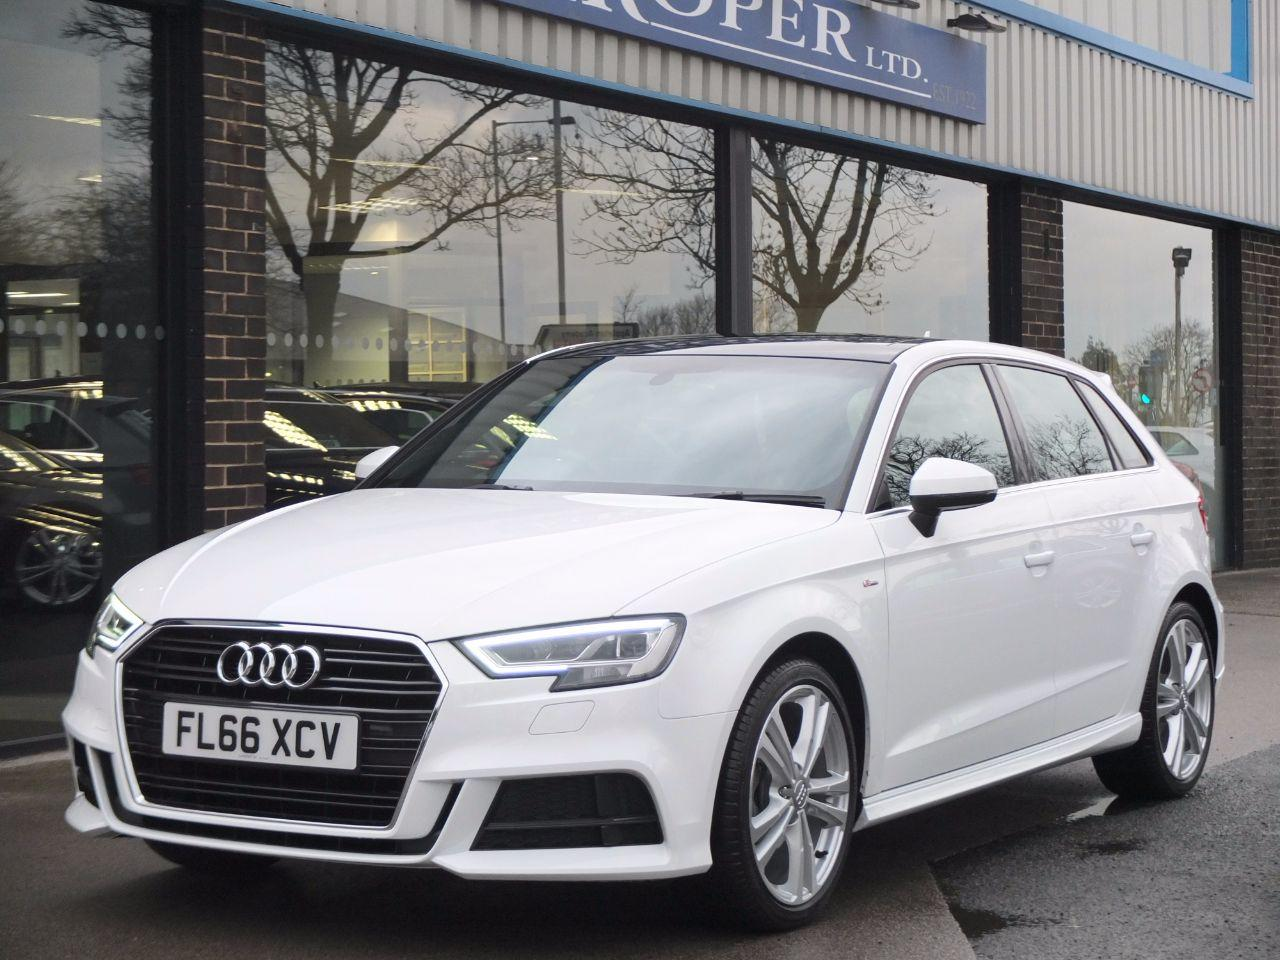 Audi A3 Sportback 1.4 TFSI S Line S Tronic (Cylinder on Demand) Hatchback Petrol Ibis WhiteAudi A3 Sportback 1.4 TFSI S Line S Tronic (Cylinder on Demand) Hatchback Petrol Ibis White at fa Roper Ltd Bradford